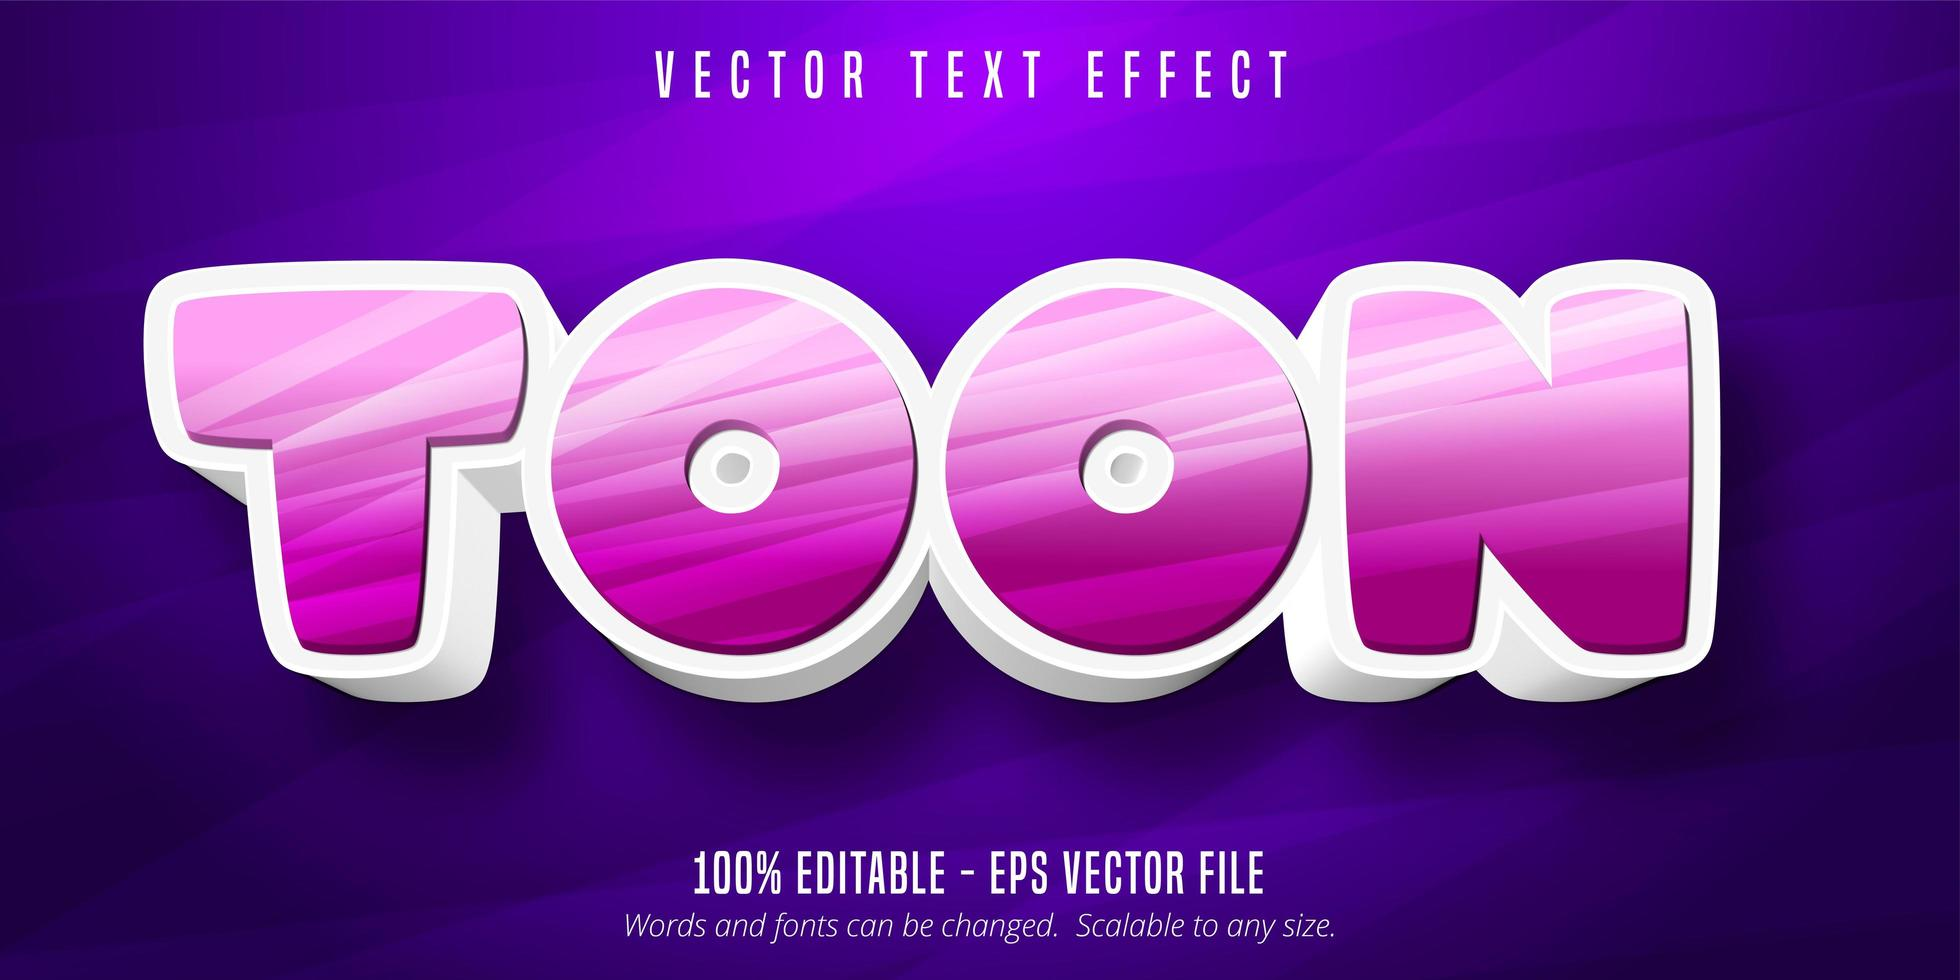 Pink and white toon cartoon style editable text effect vector